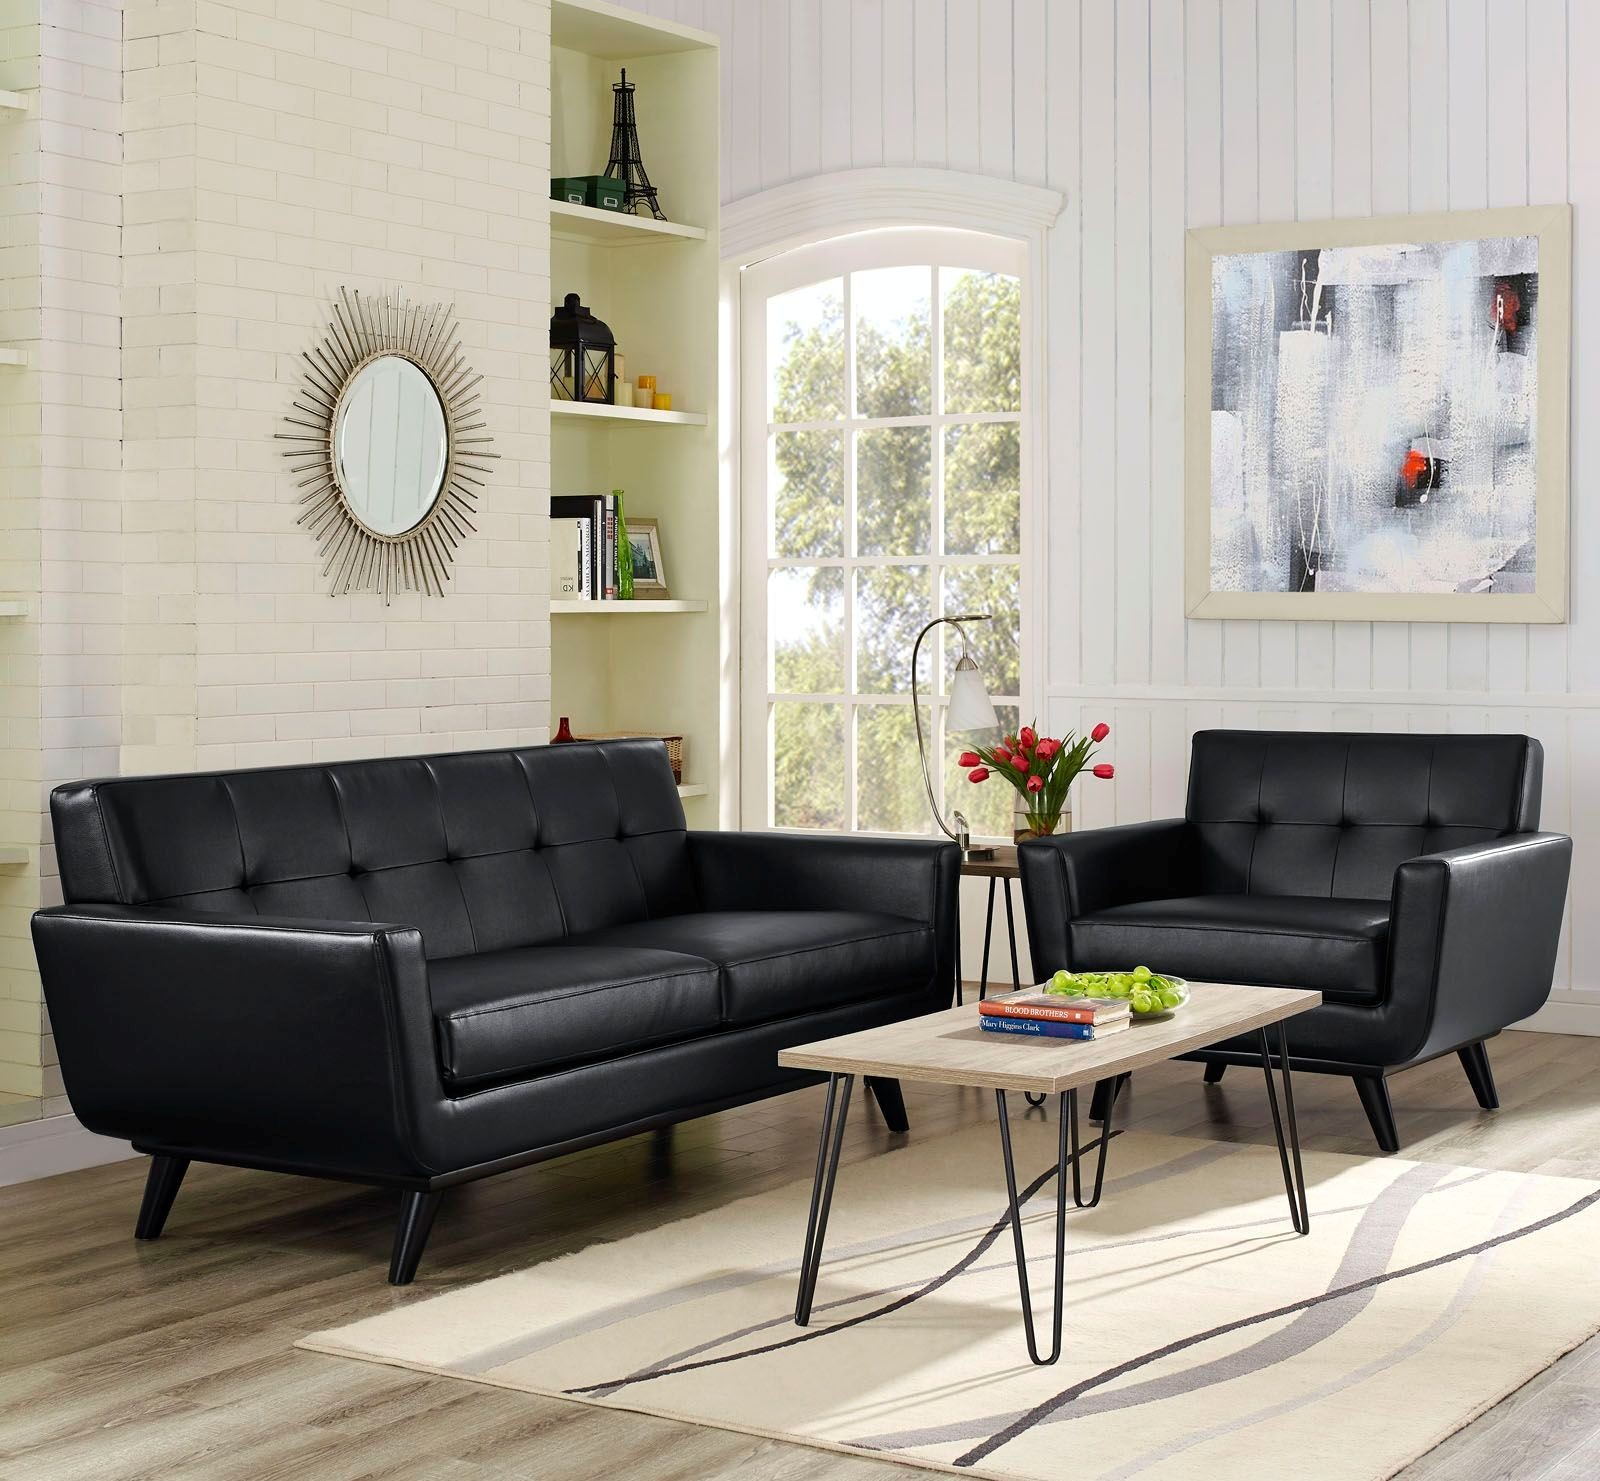 Engage black 2 piece leather living room set eei 1765 blk for 8 piece living room furniture set